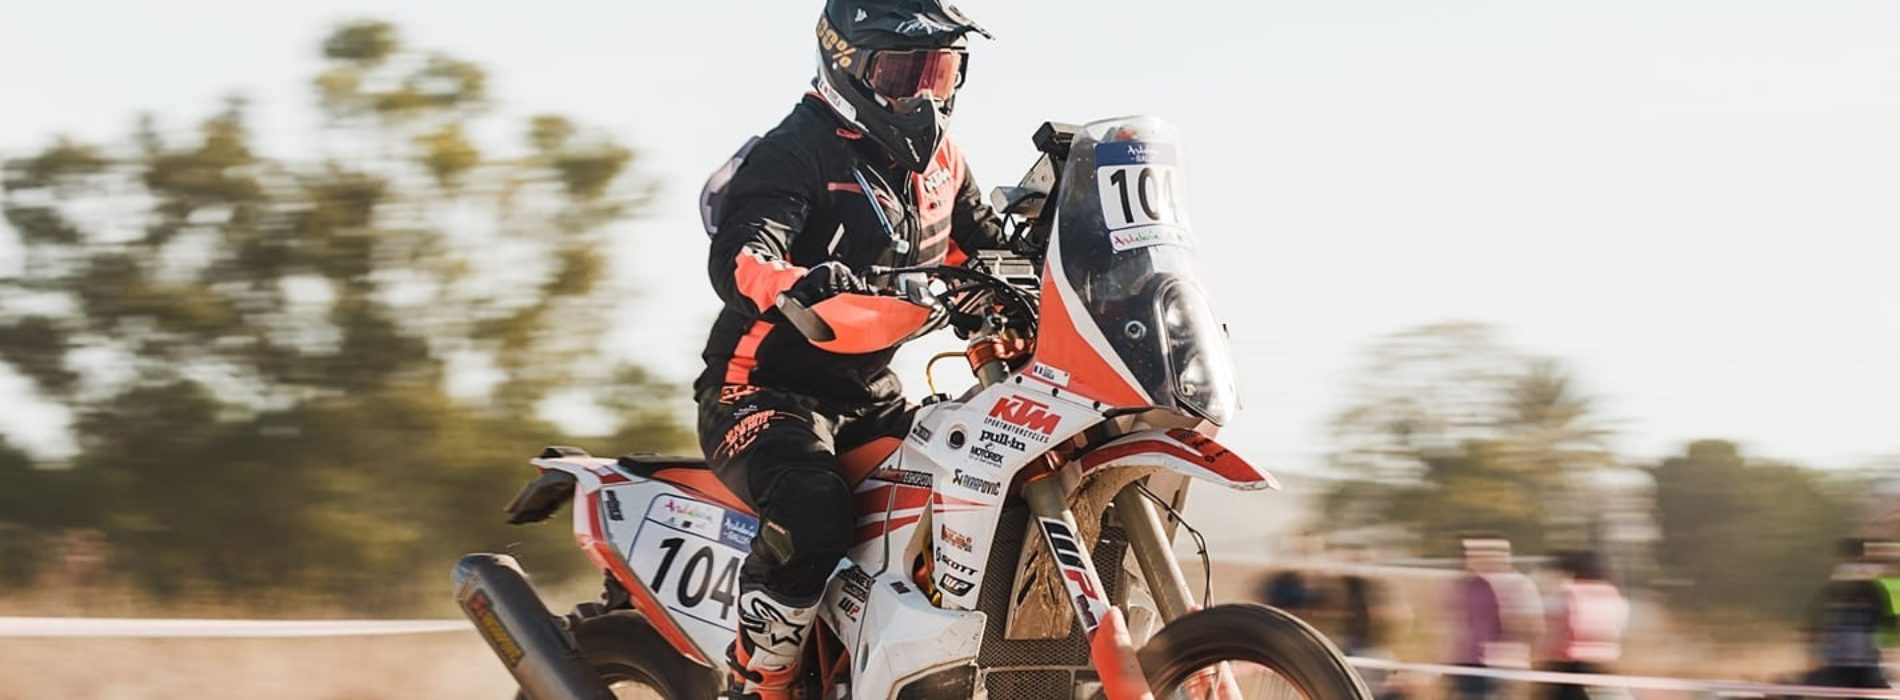 Sara Jugla races up-coming Dakar Rally 2021 in Bike Category- rookie race for the French female!